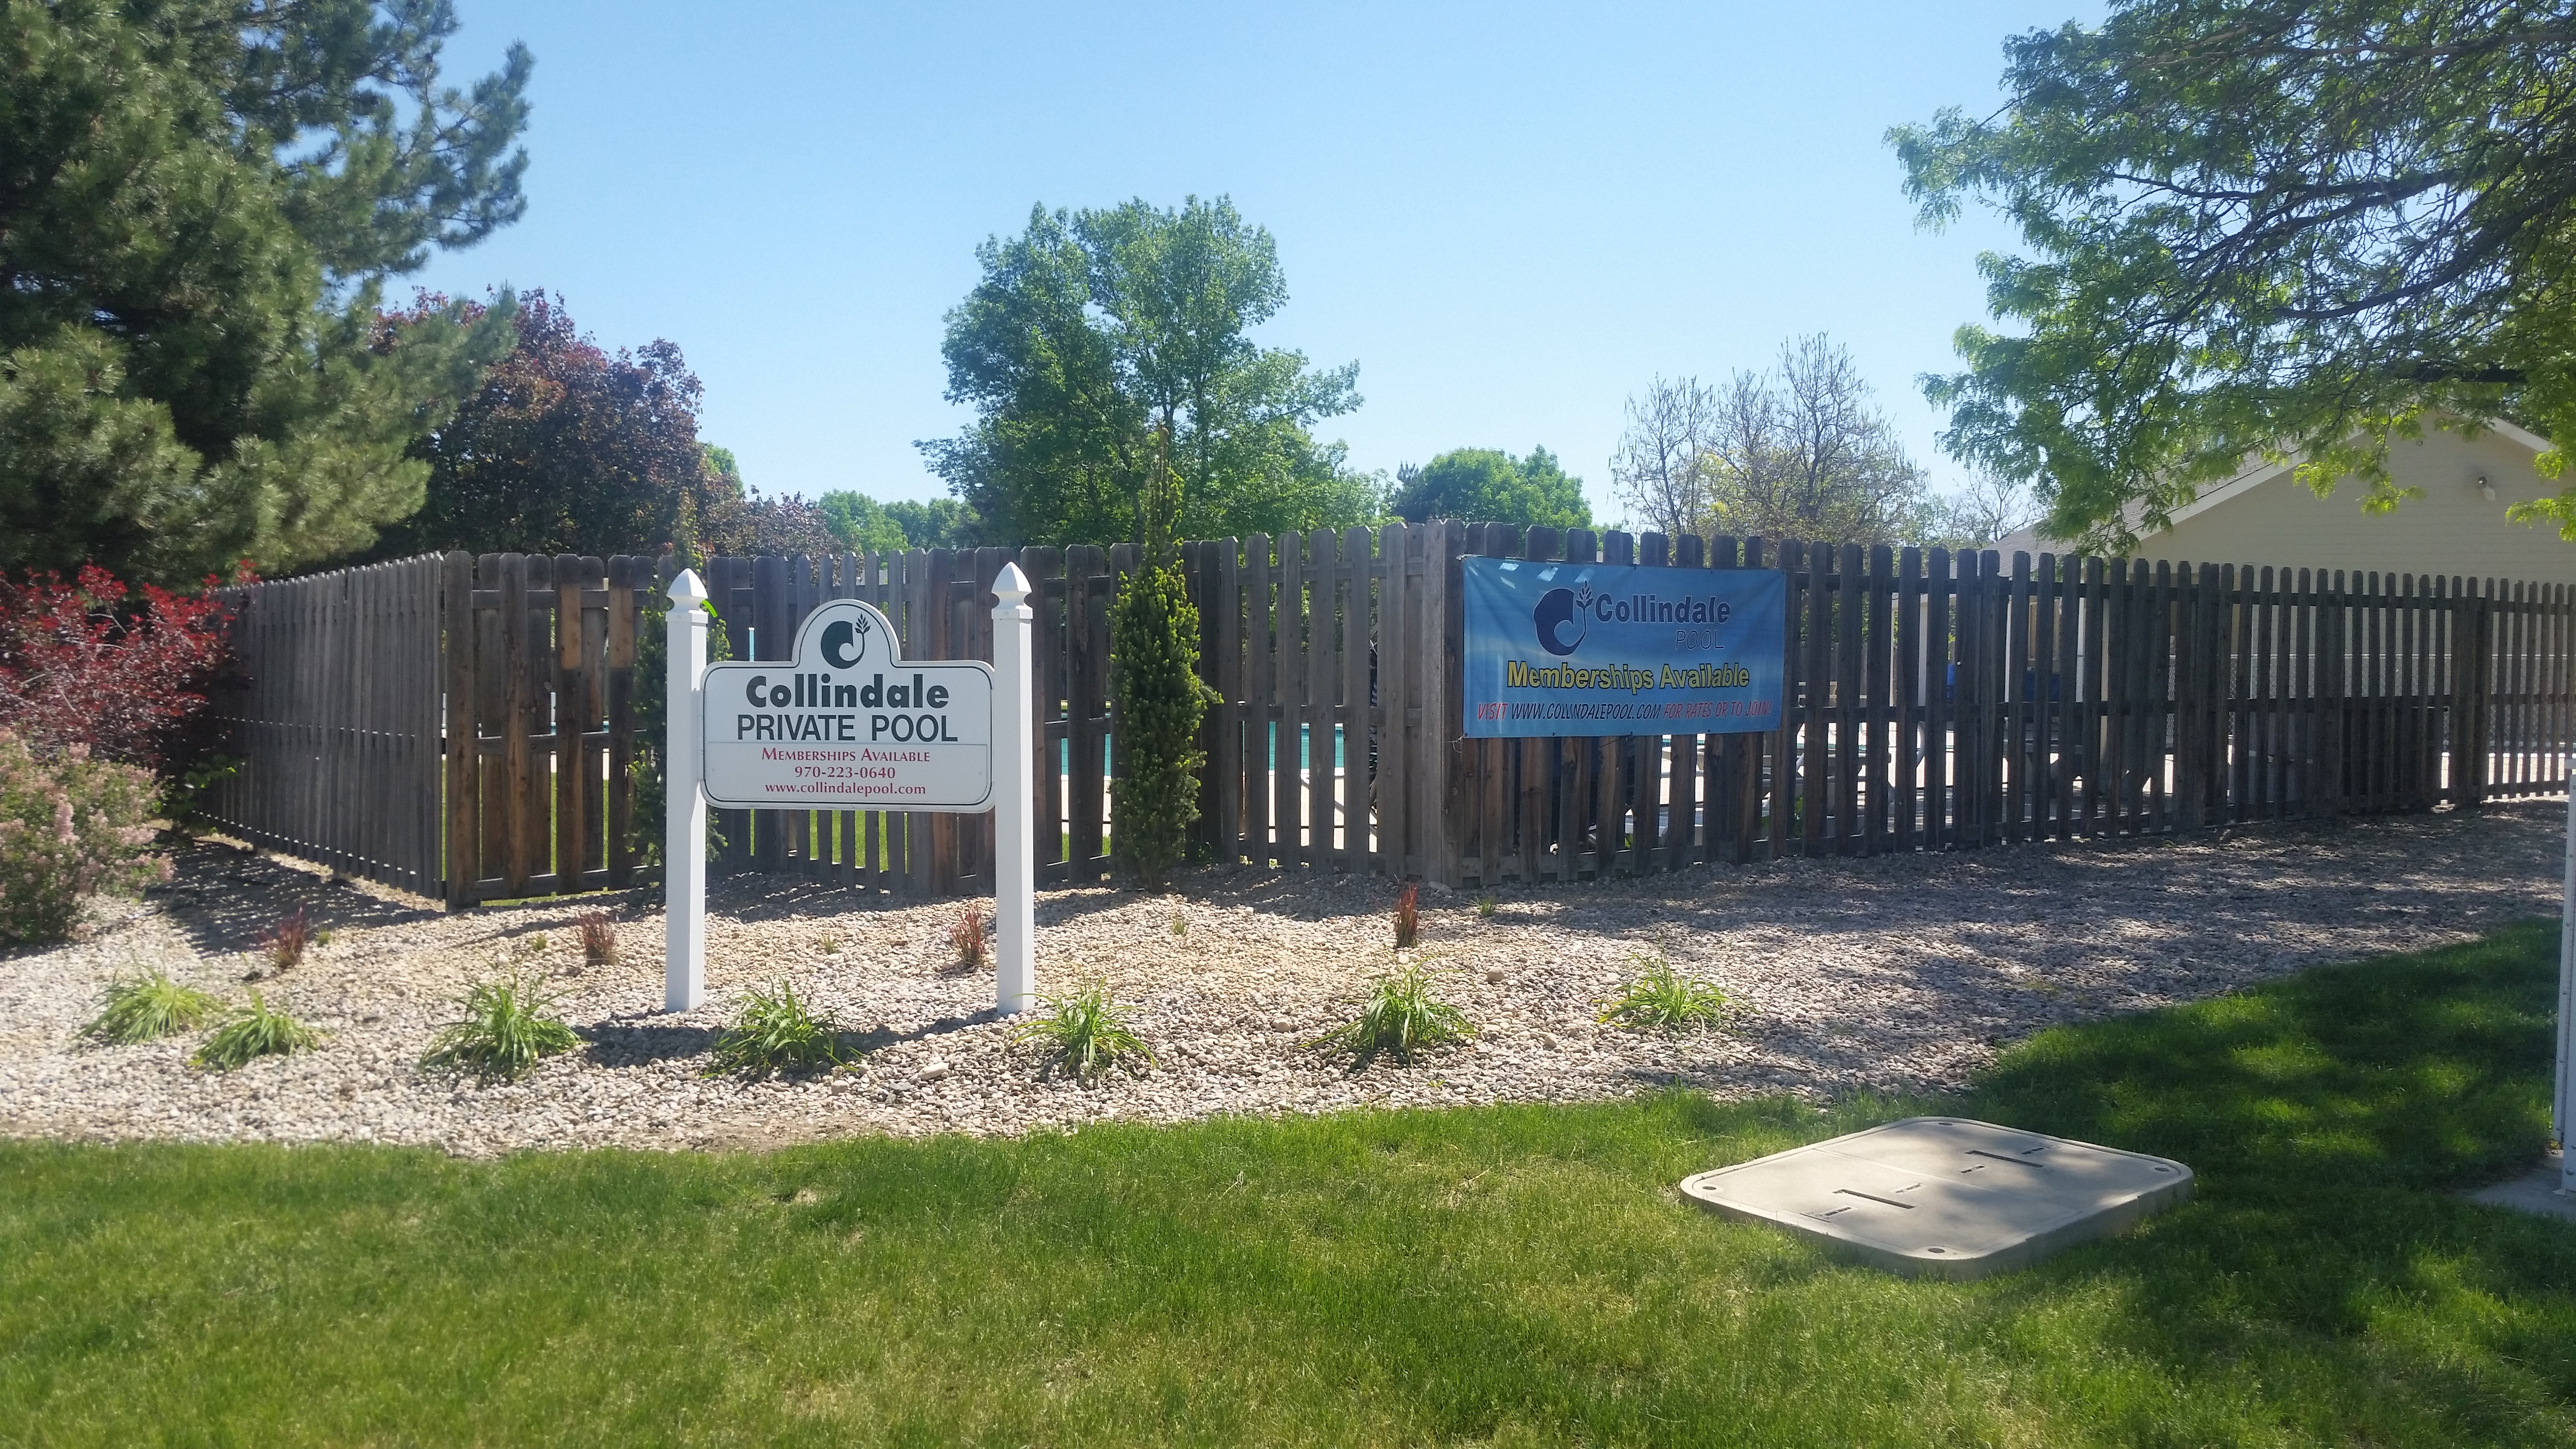 Collindale pool sign